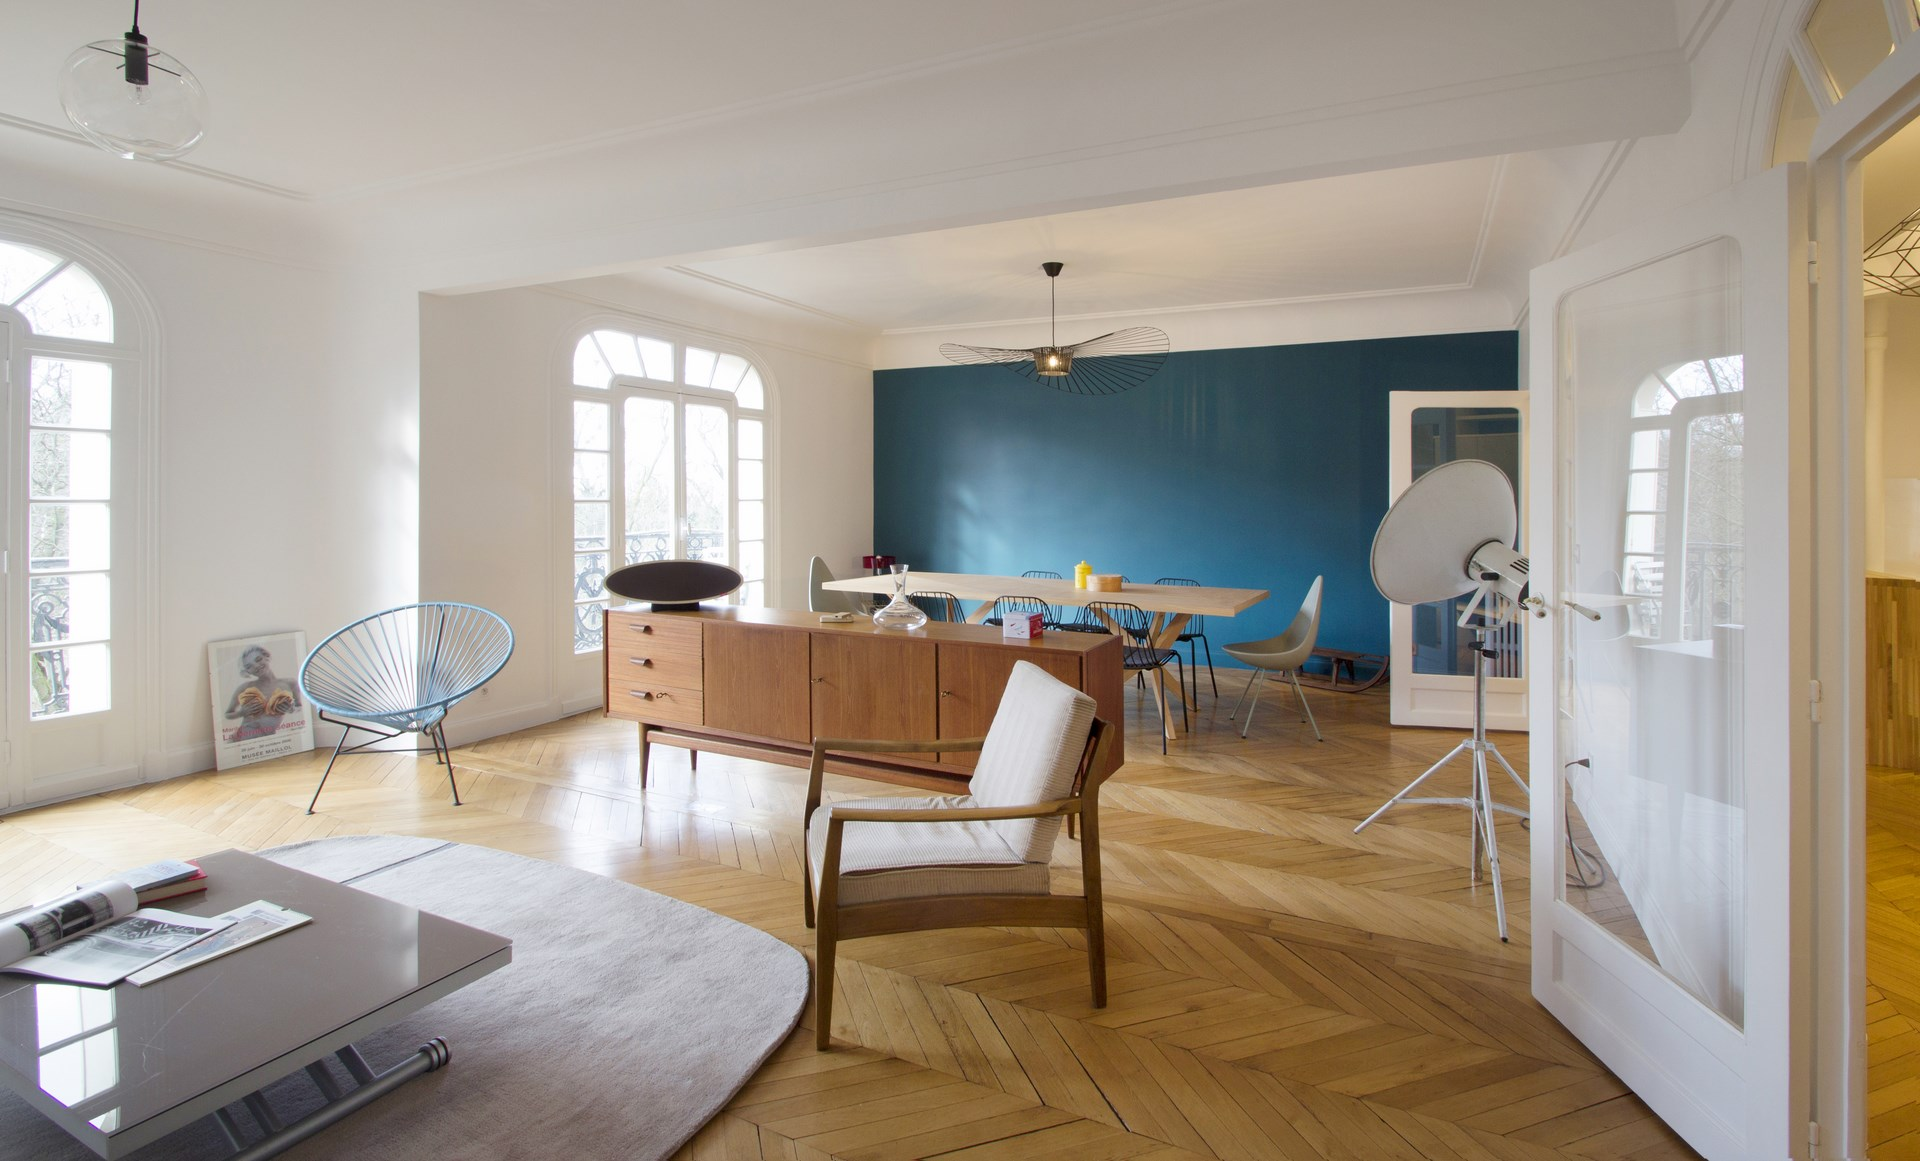 Salon design dans un appartement meilleures images d for Architecture nordique